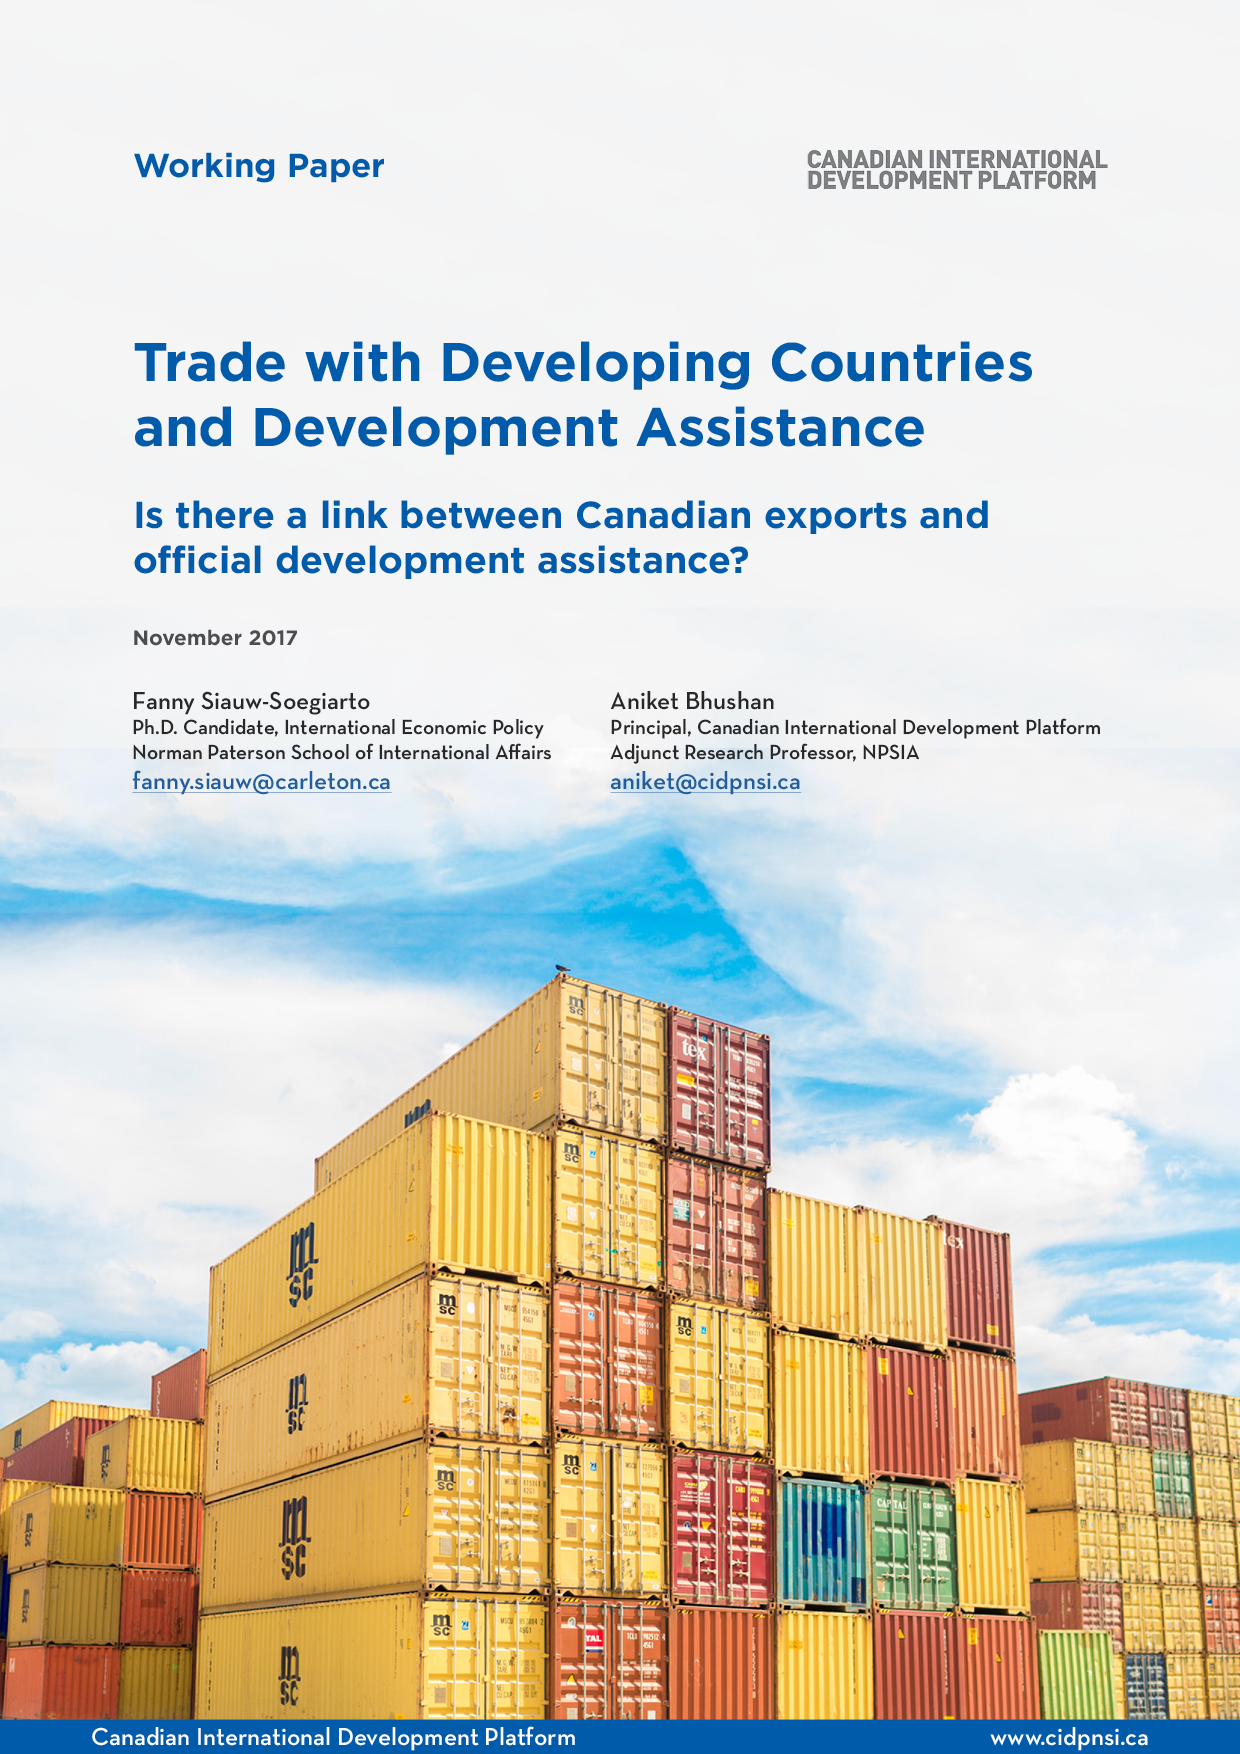 Trade with Developing Countries and Development Assistance